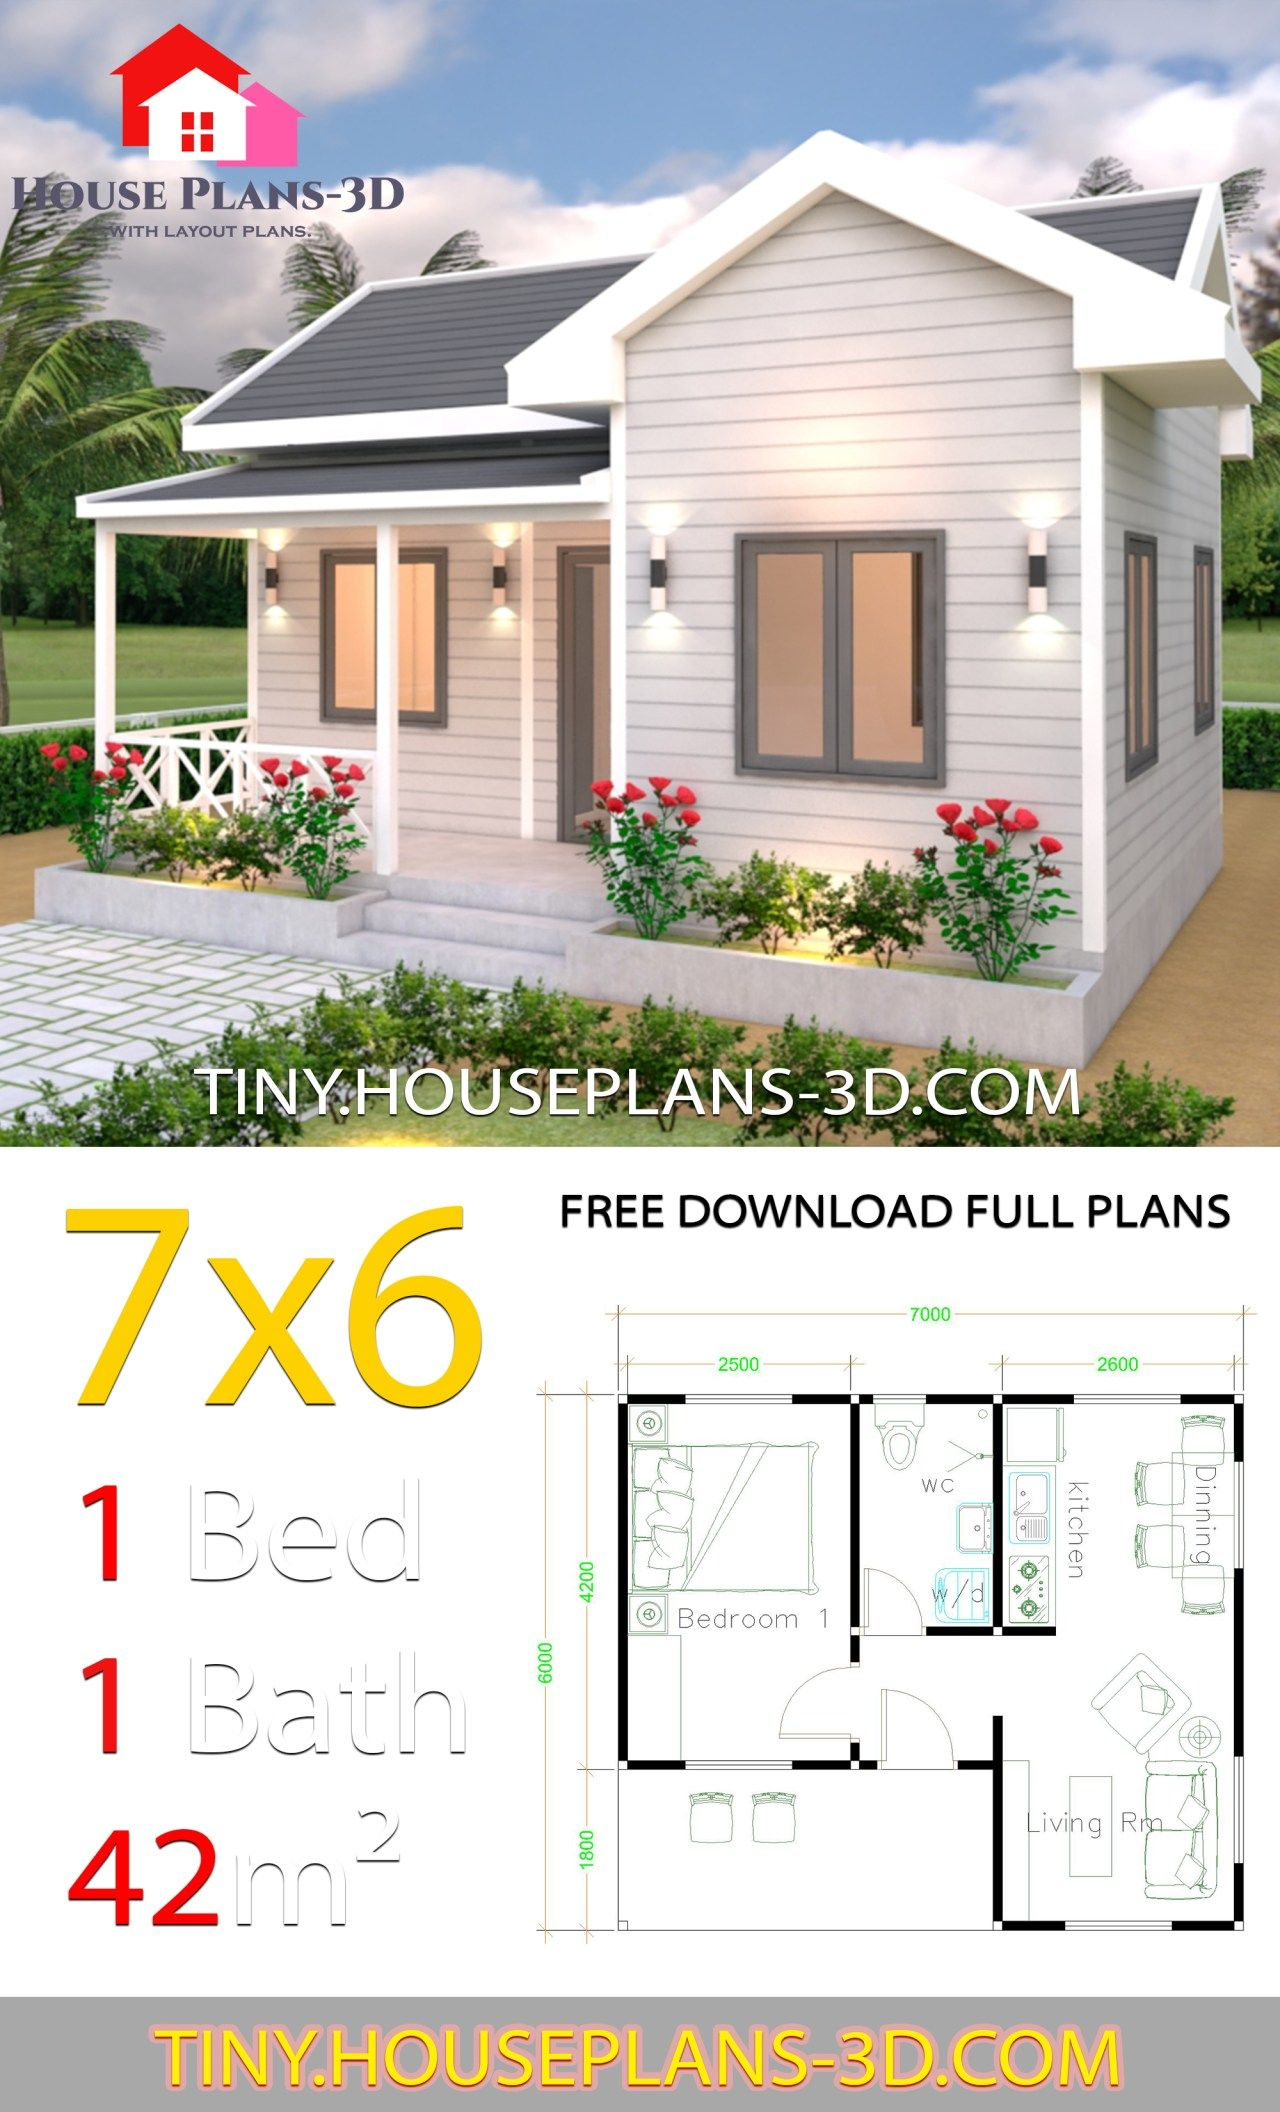 Tiny House Plans 7x6 With One Bedroom Cross Gable Roof Tiny House Plans Small House Design Plans Small House Layout House Design Pictures